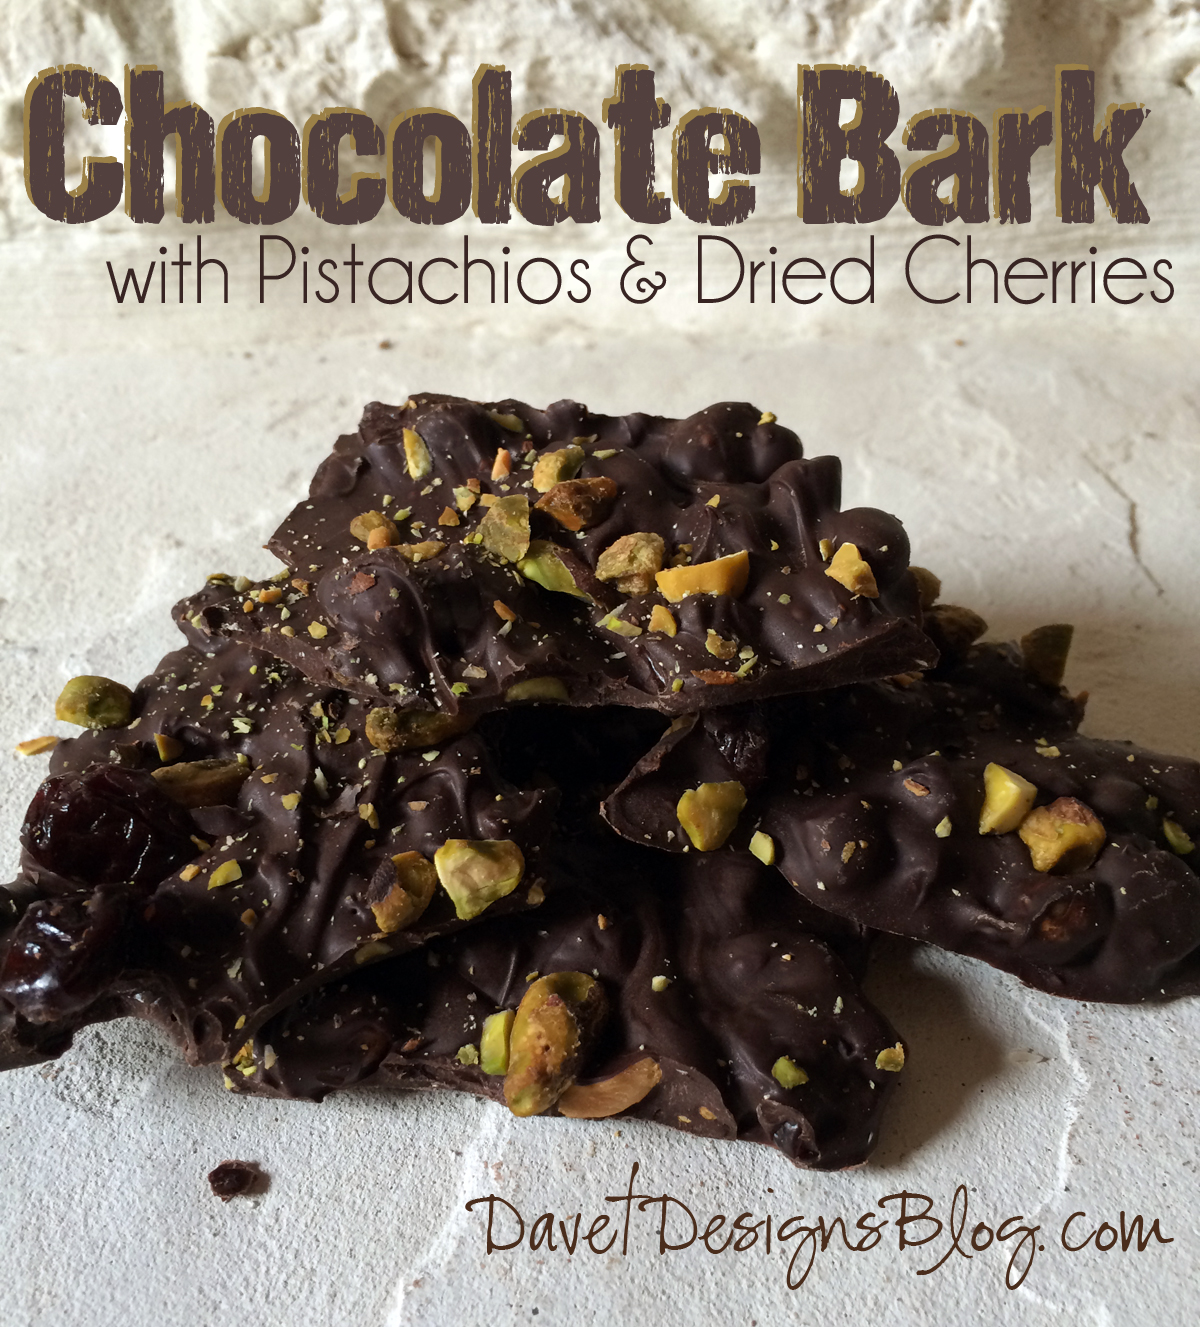 DIY Dark Chocolate Bark with Pistachios and Dried Cherries